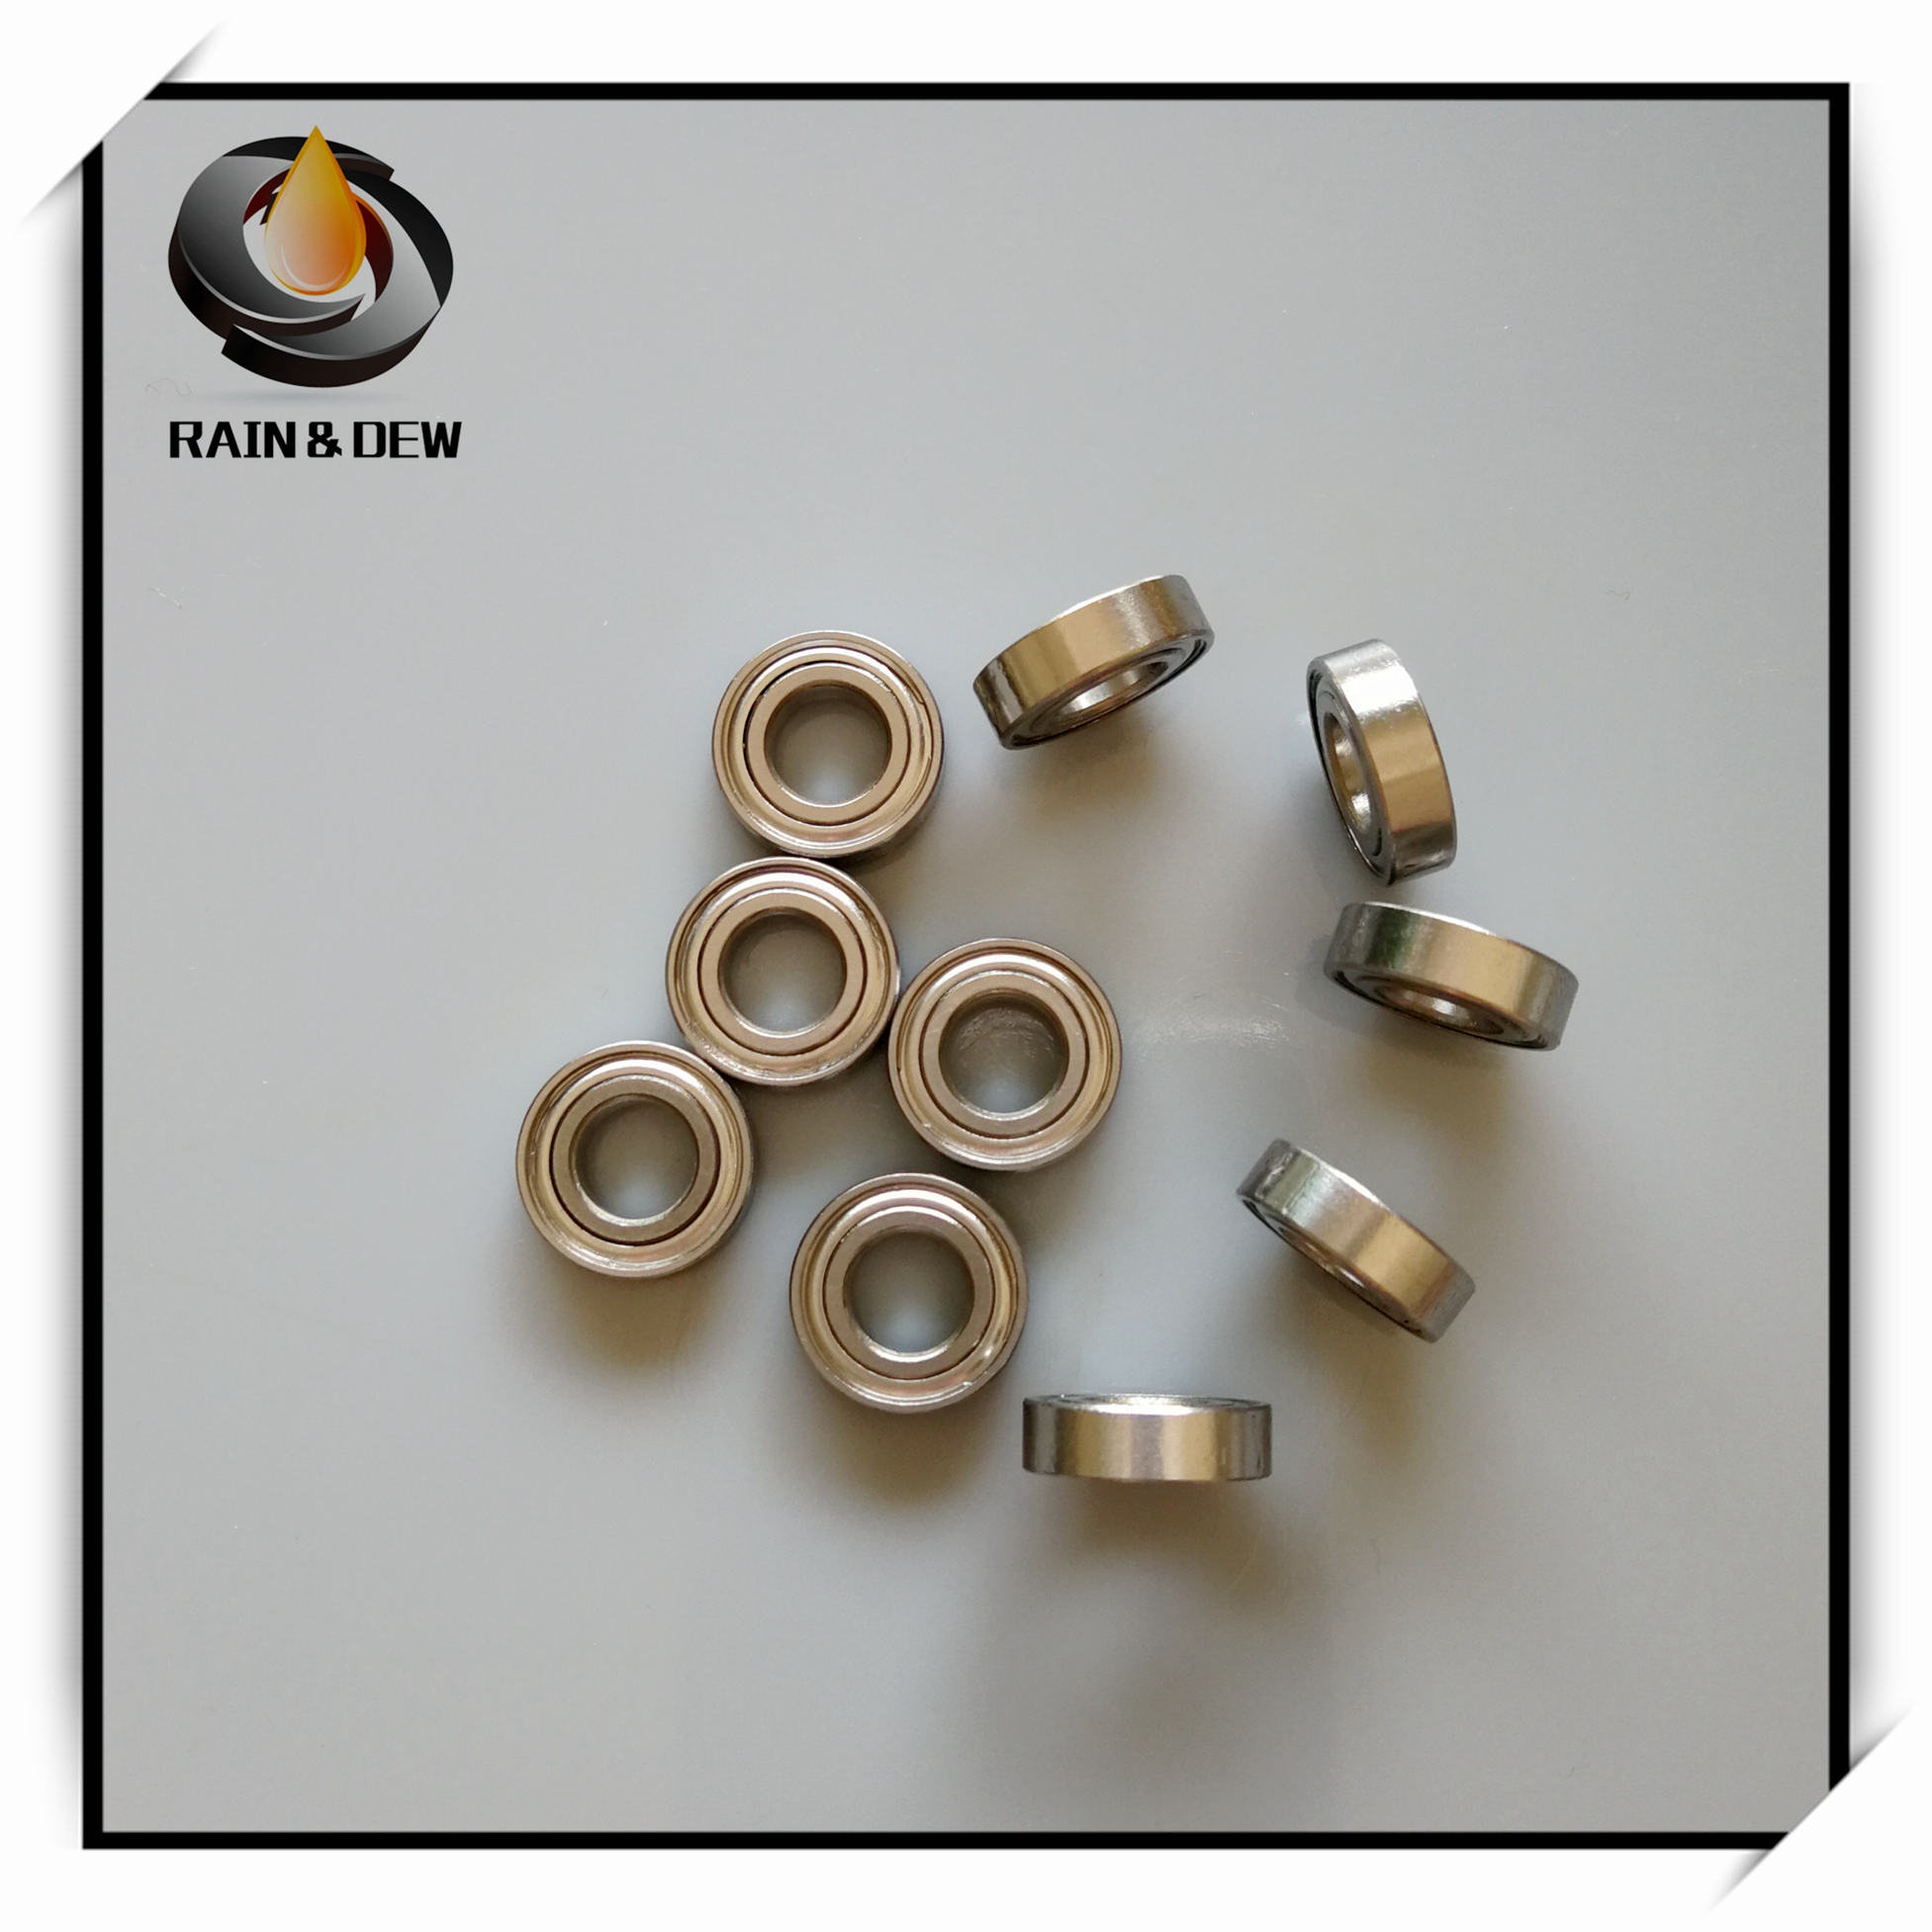 10Pcs S689ZZ Stainless Steel Ball Bearings ABEC-7 9x17x5 Mm  Stainless Steel S689Z S689 Z ZZ Ball Bearings